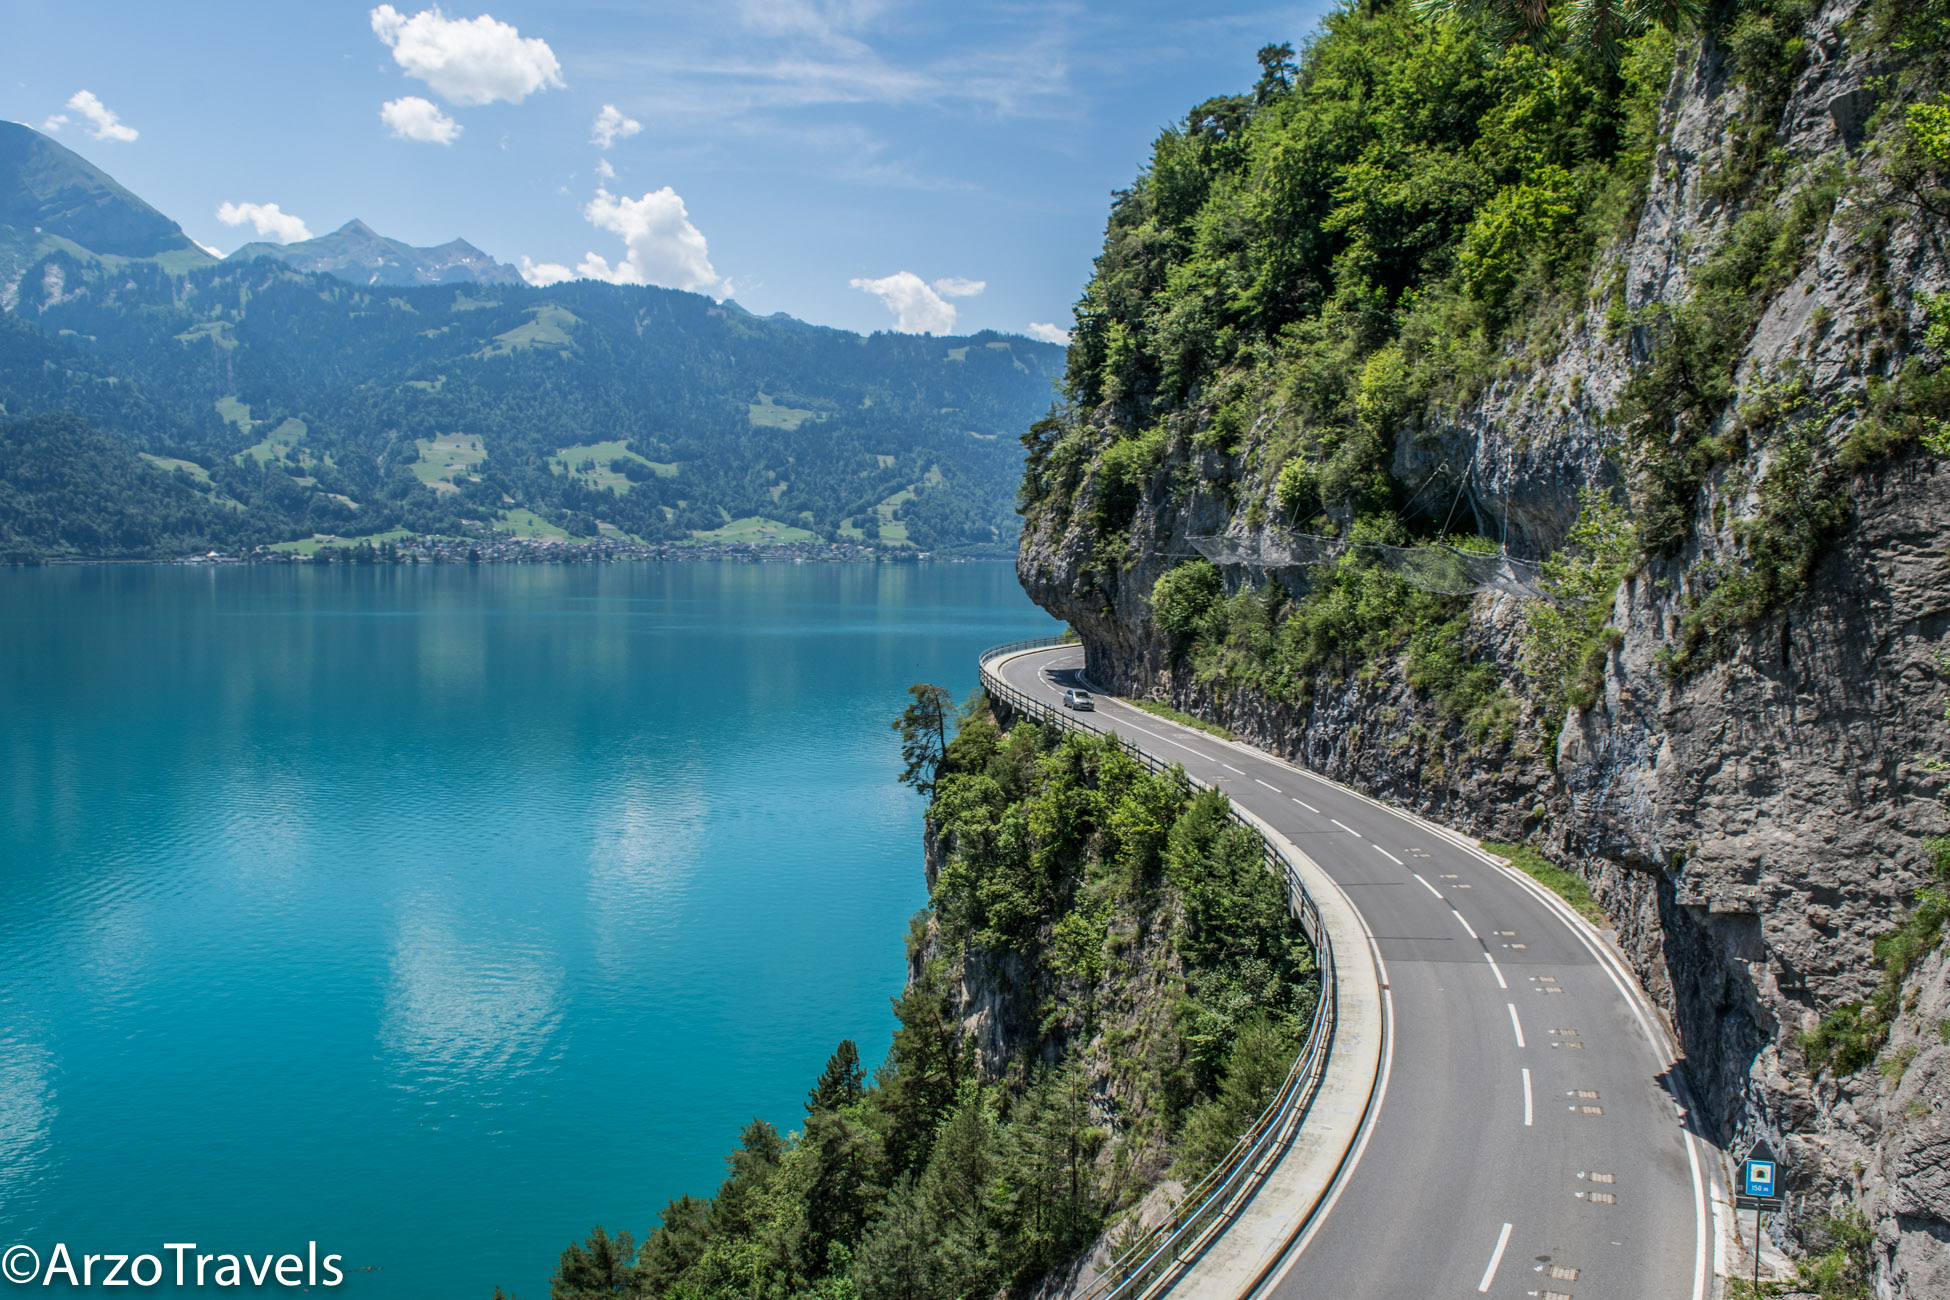 Coolest road trips